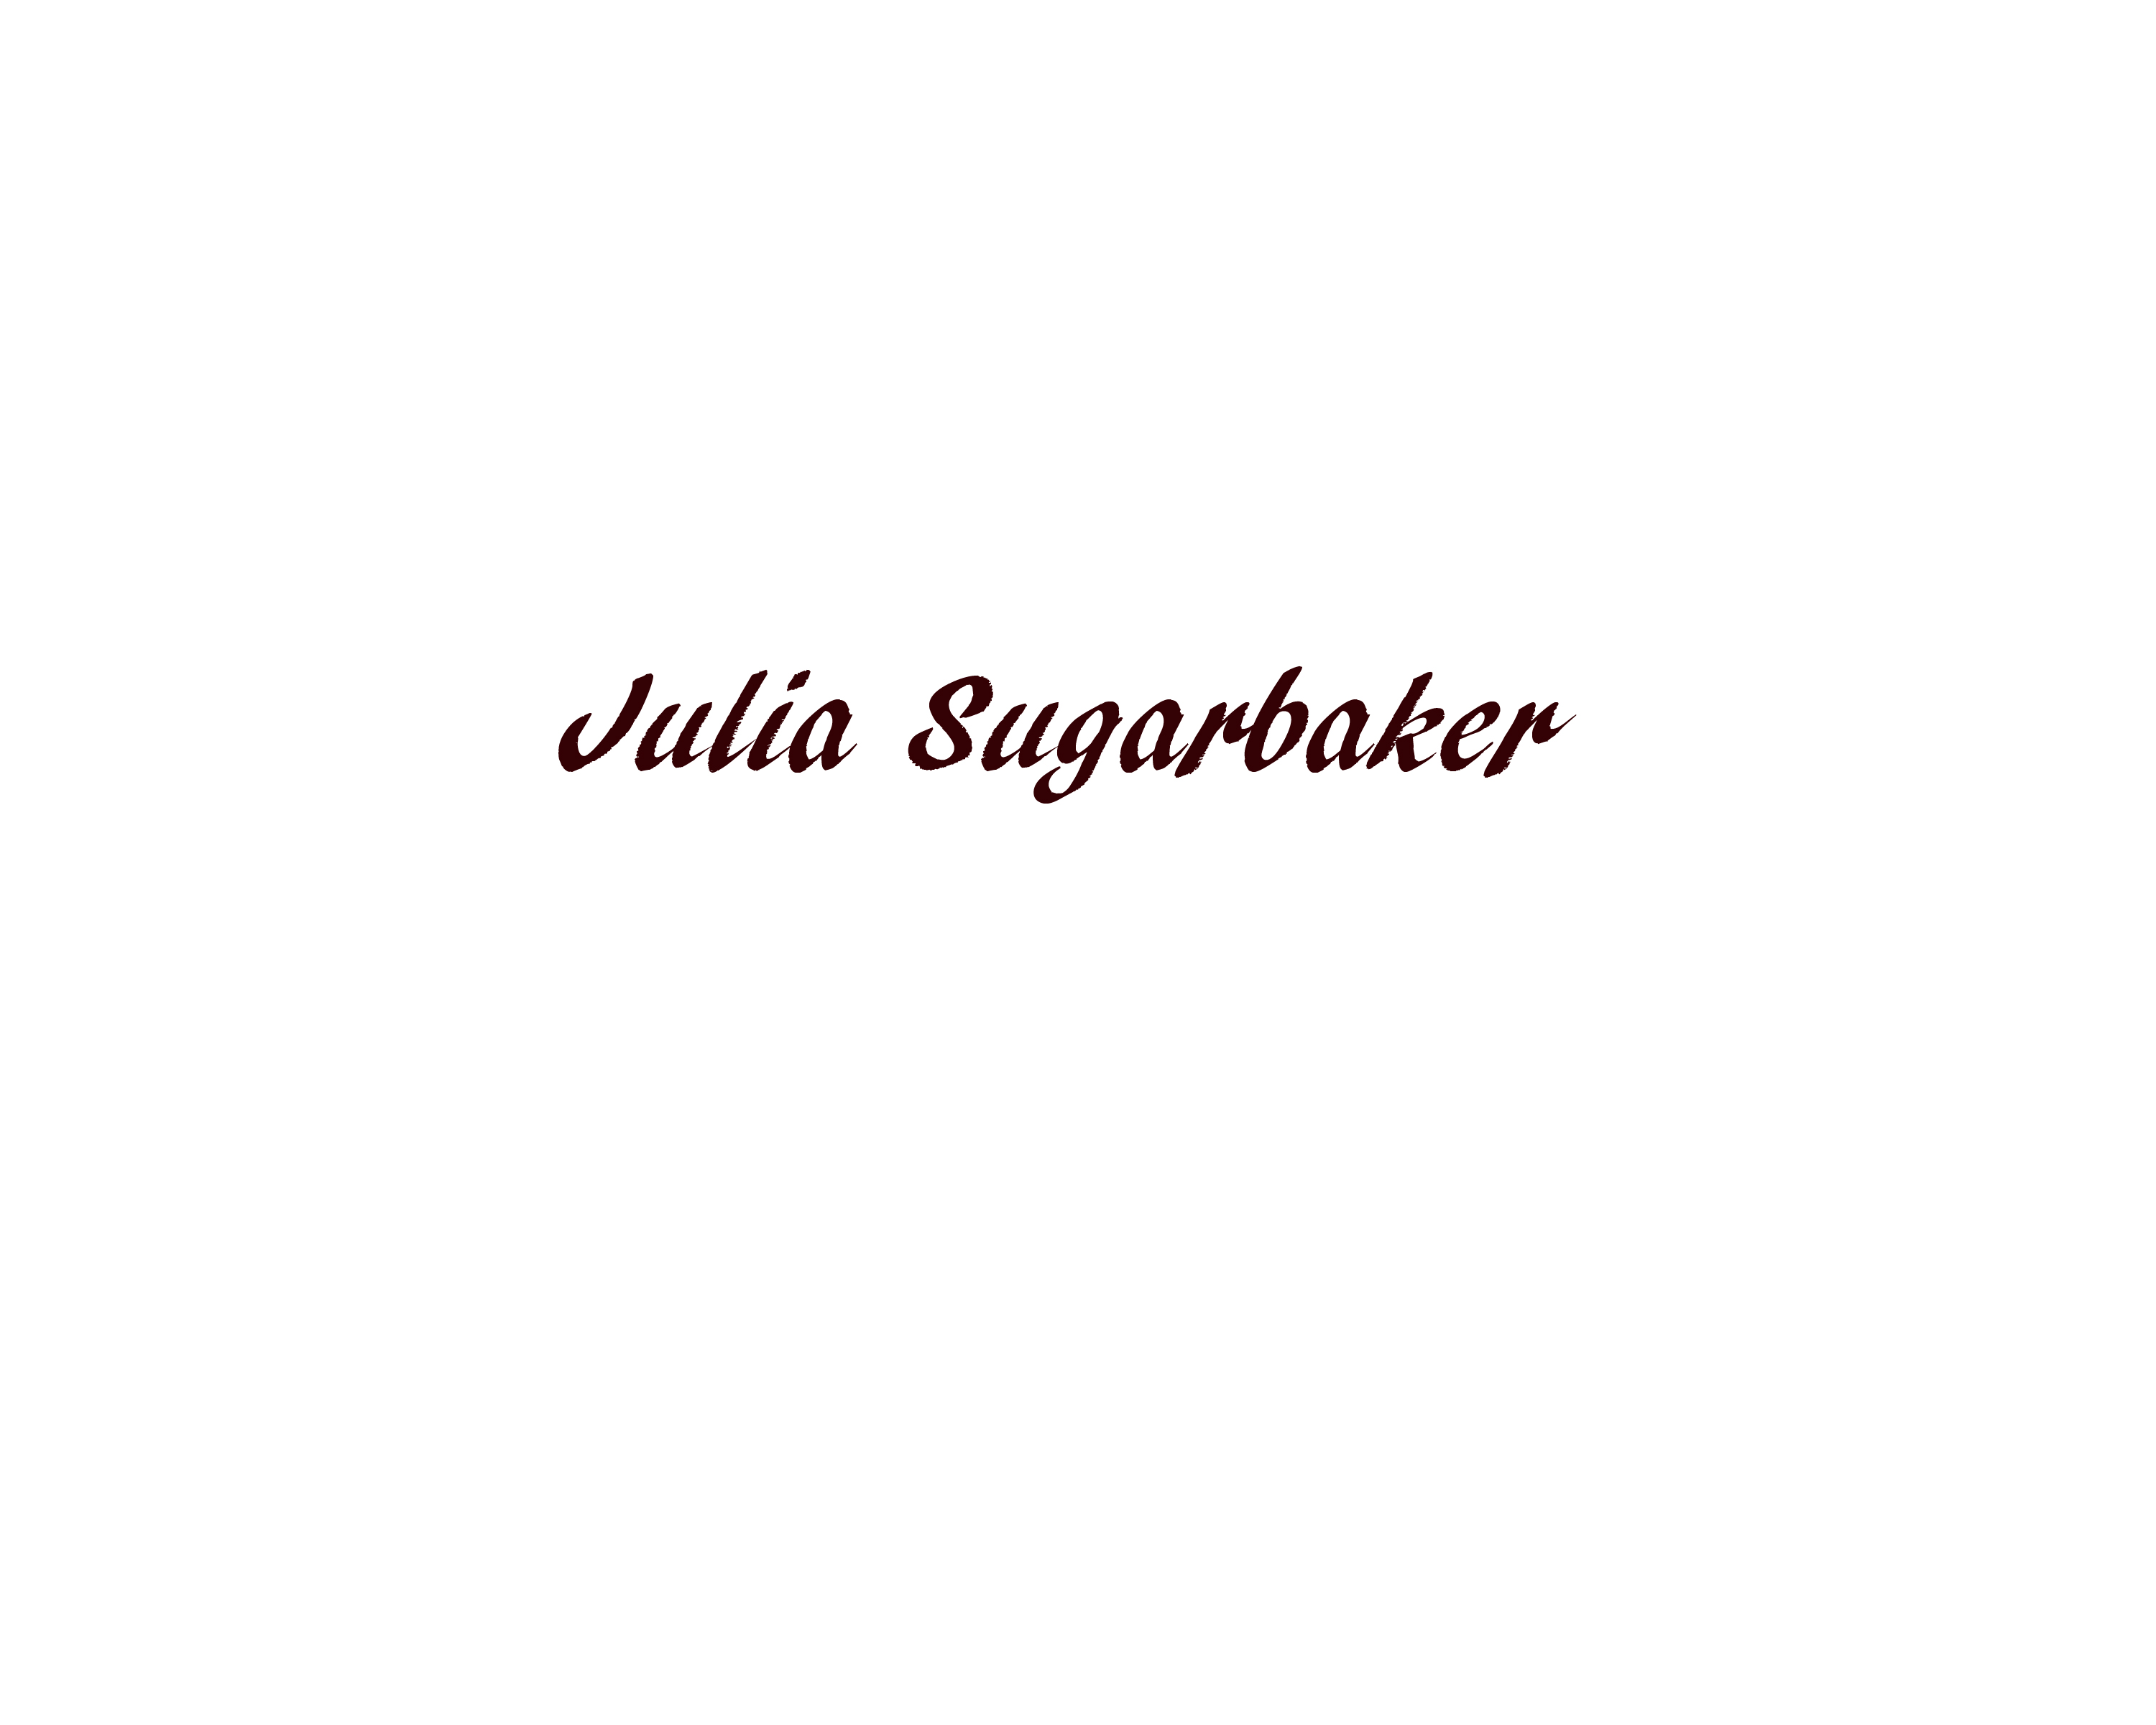 julia sugarbaker's Signature